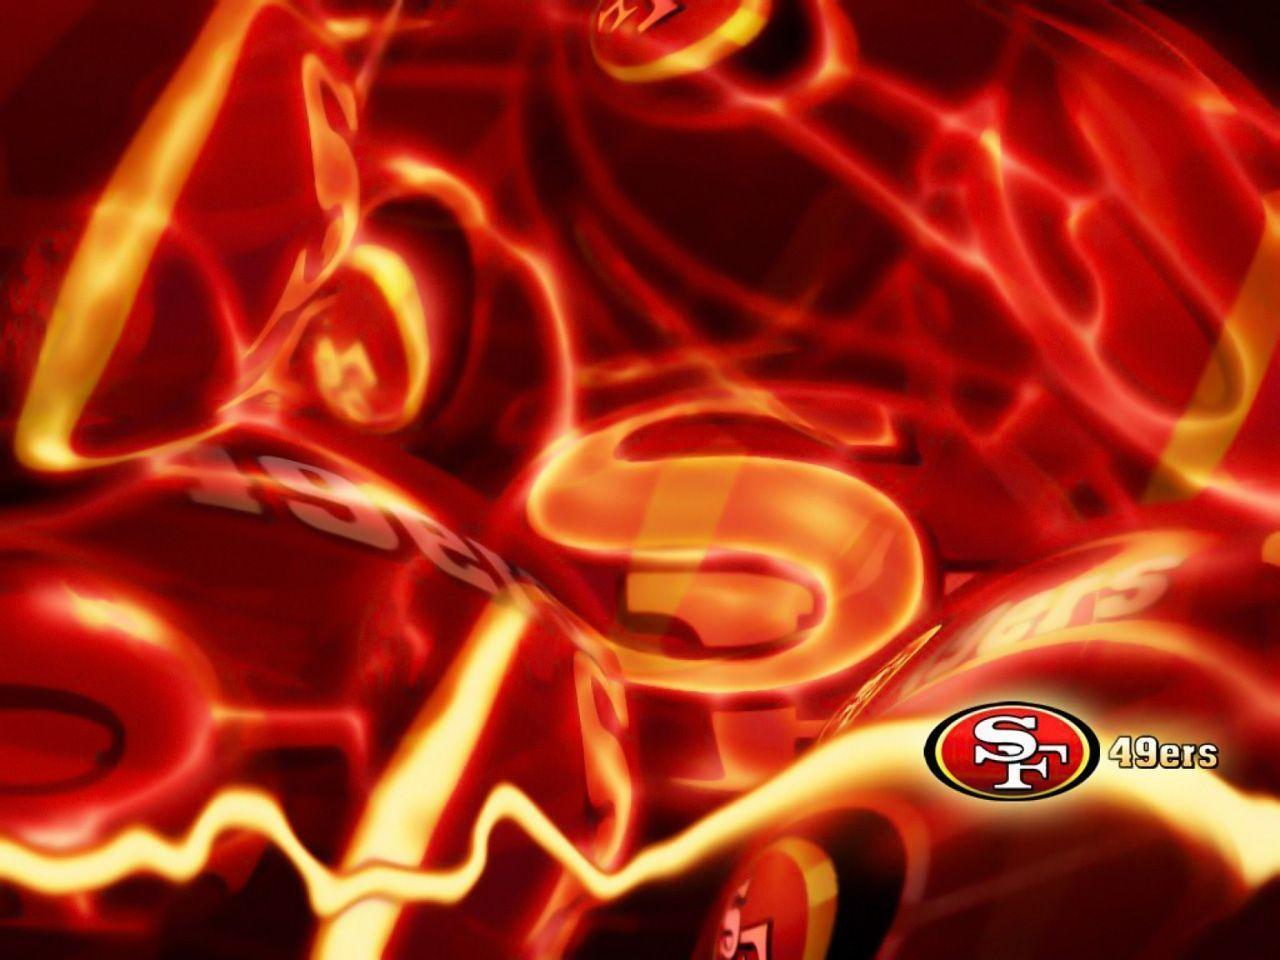 Free 49ers wallpapers your phone wallpaper cave free 49ers wallpapers 1280960 high definition wallpaper voltagebd Gallery